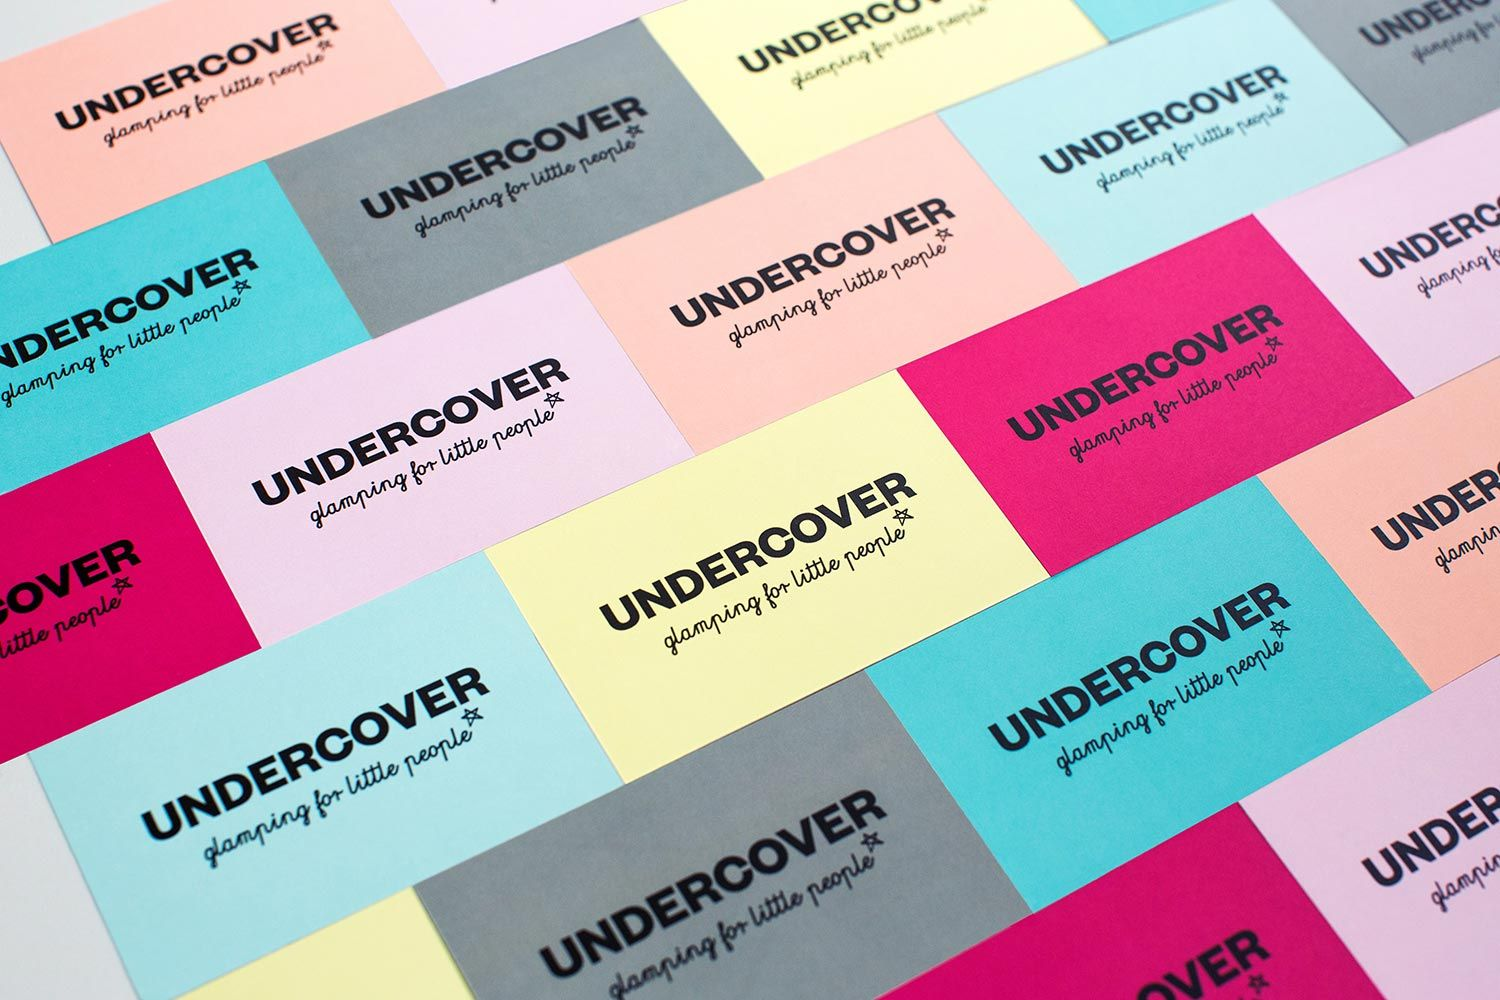 Undercover business cards, Branding and Graphic design. Hannah ...